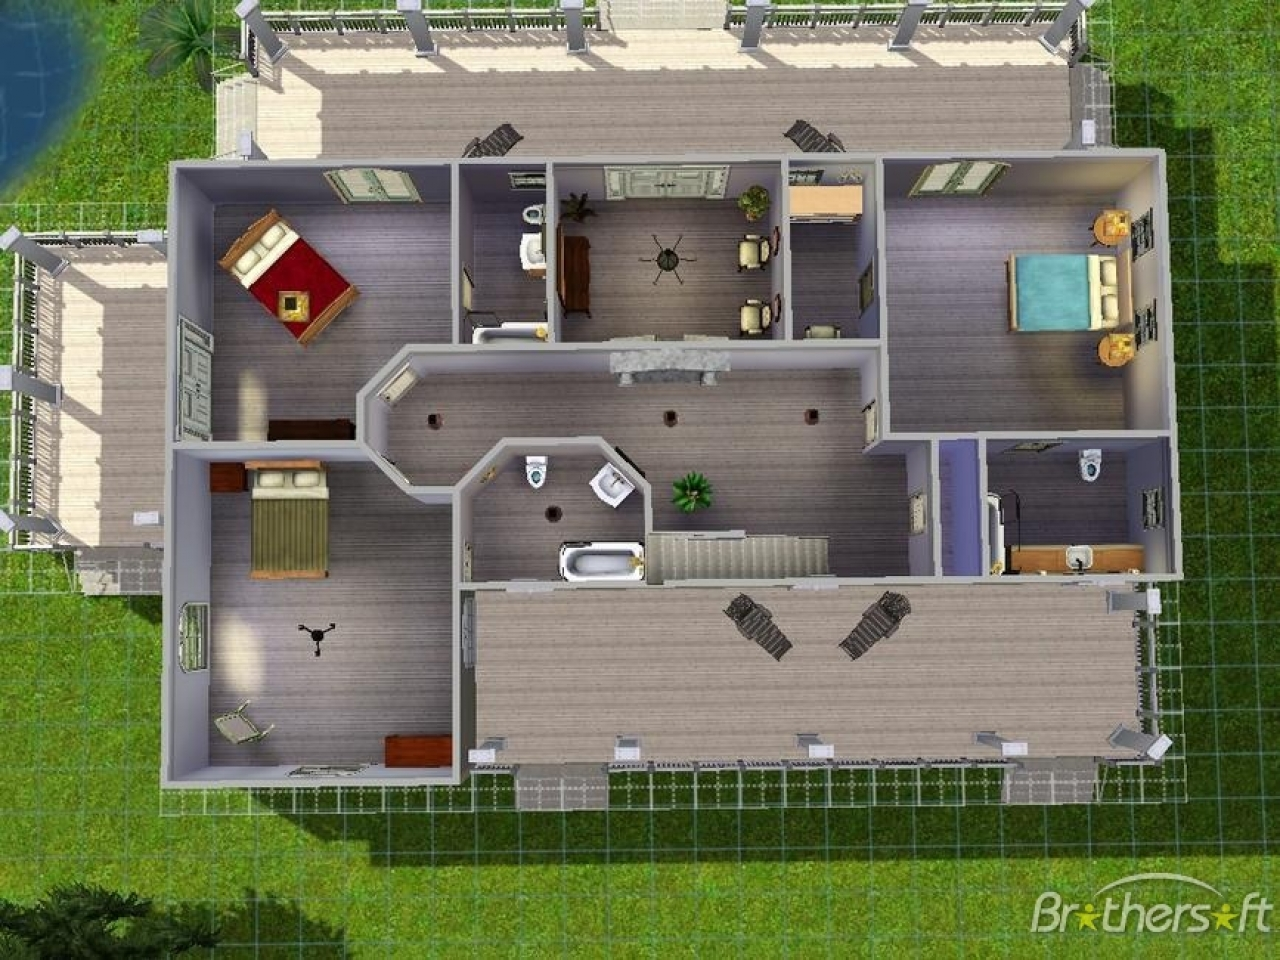 Sims 3 Houses Inside Sims 3 House Ideas Beach House Layouts - Treesranch.com